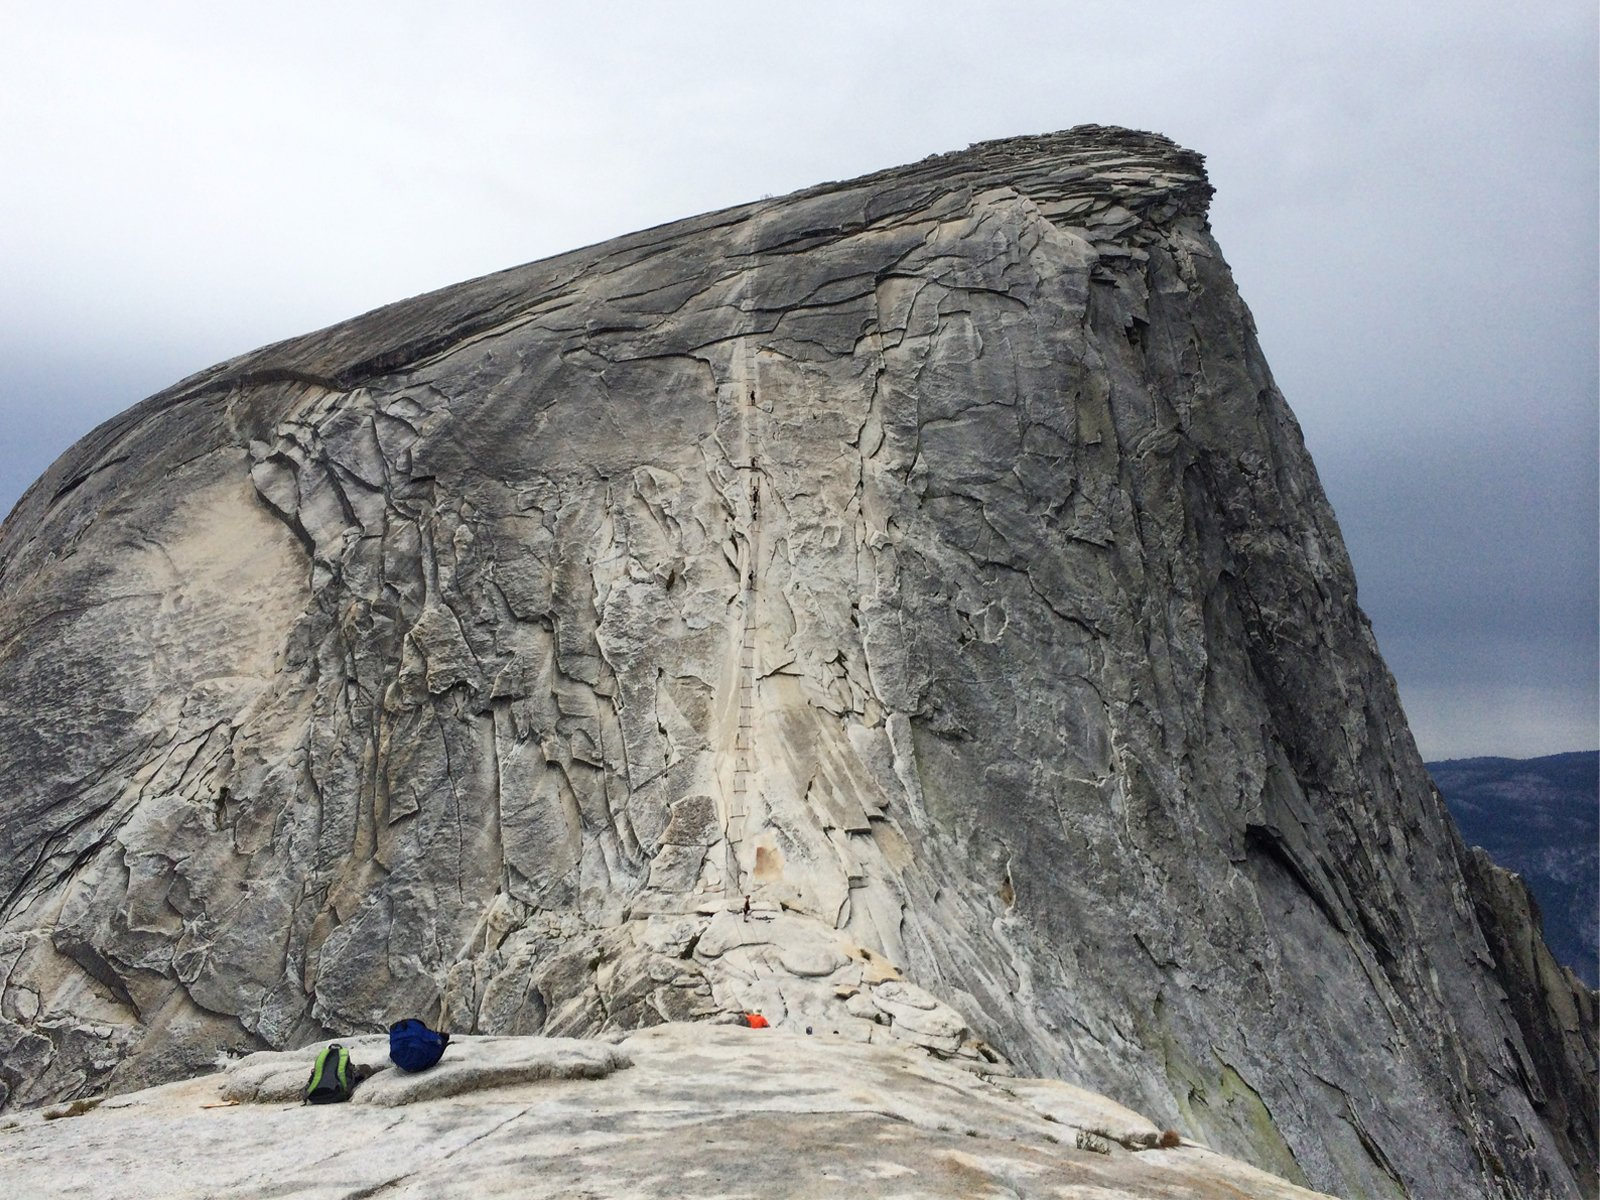 view of the cables leading up to the summit of half dome in yosemite national park